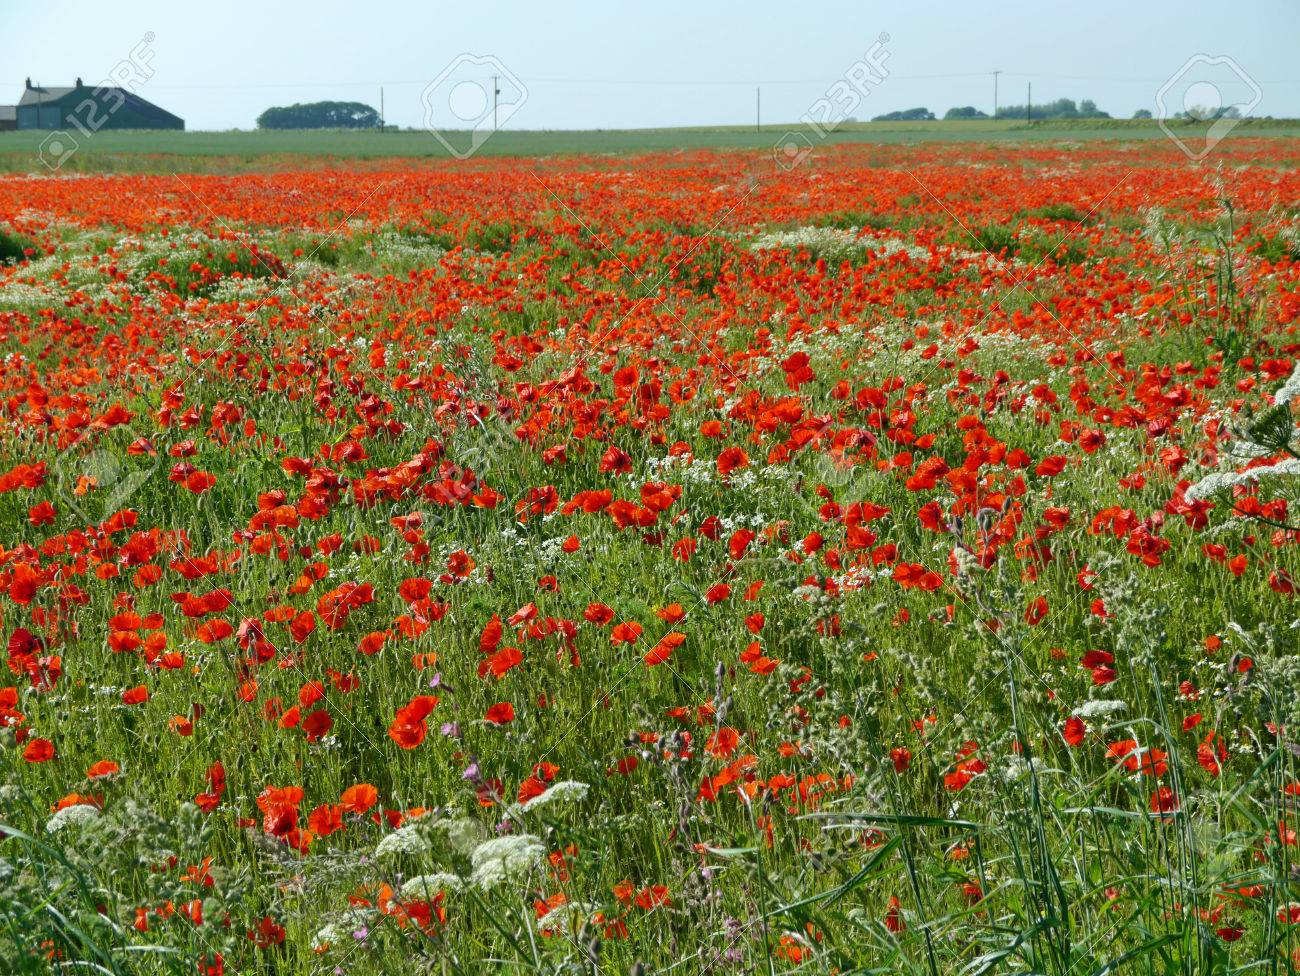 A meadow full of poppies and grasses in rural English countryside Standard-Bild - 81912960